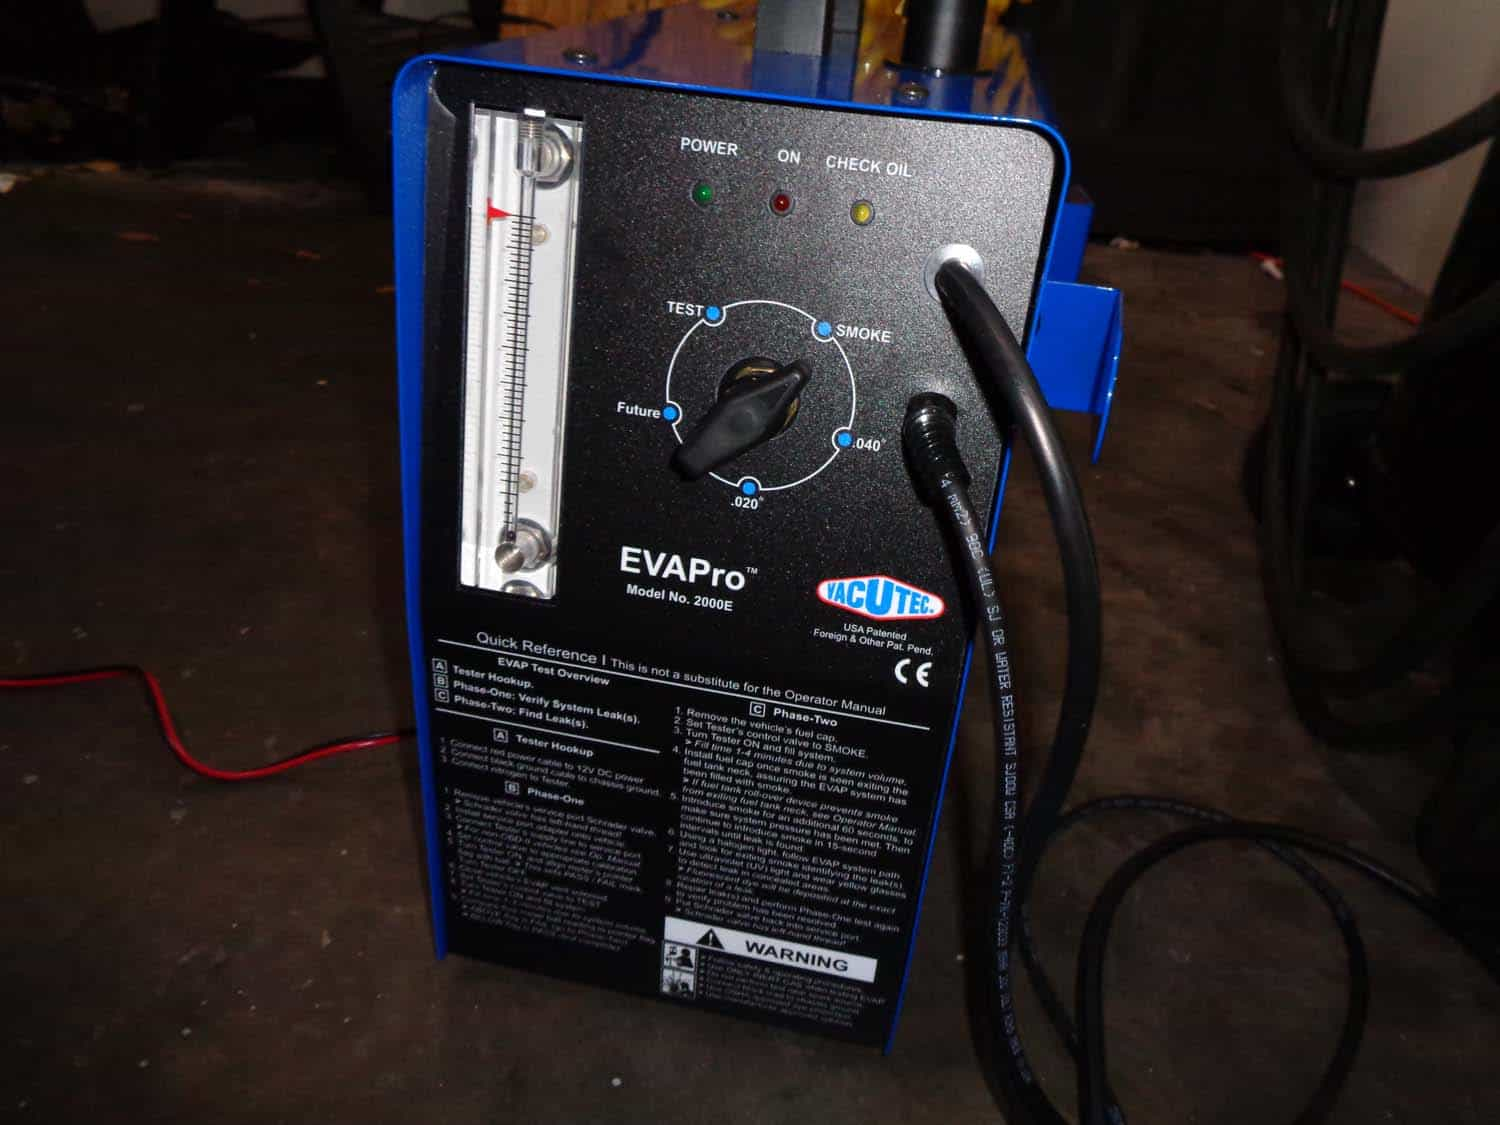 intake boot leak detector smoke machine